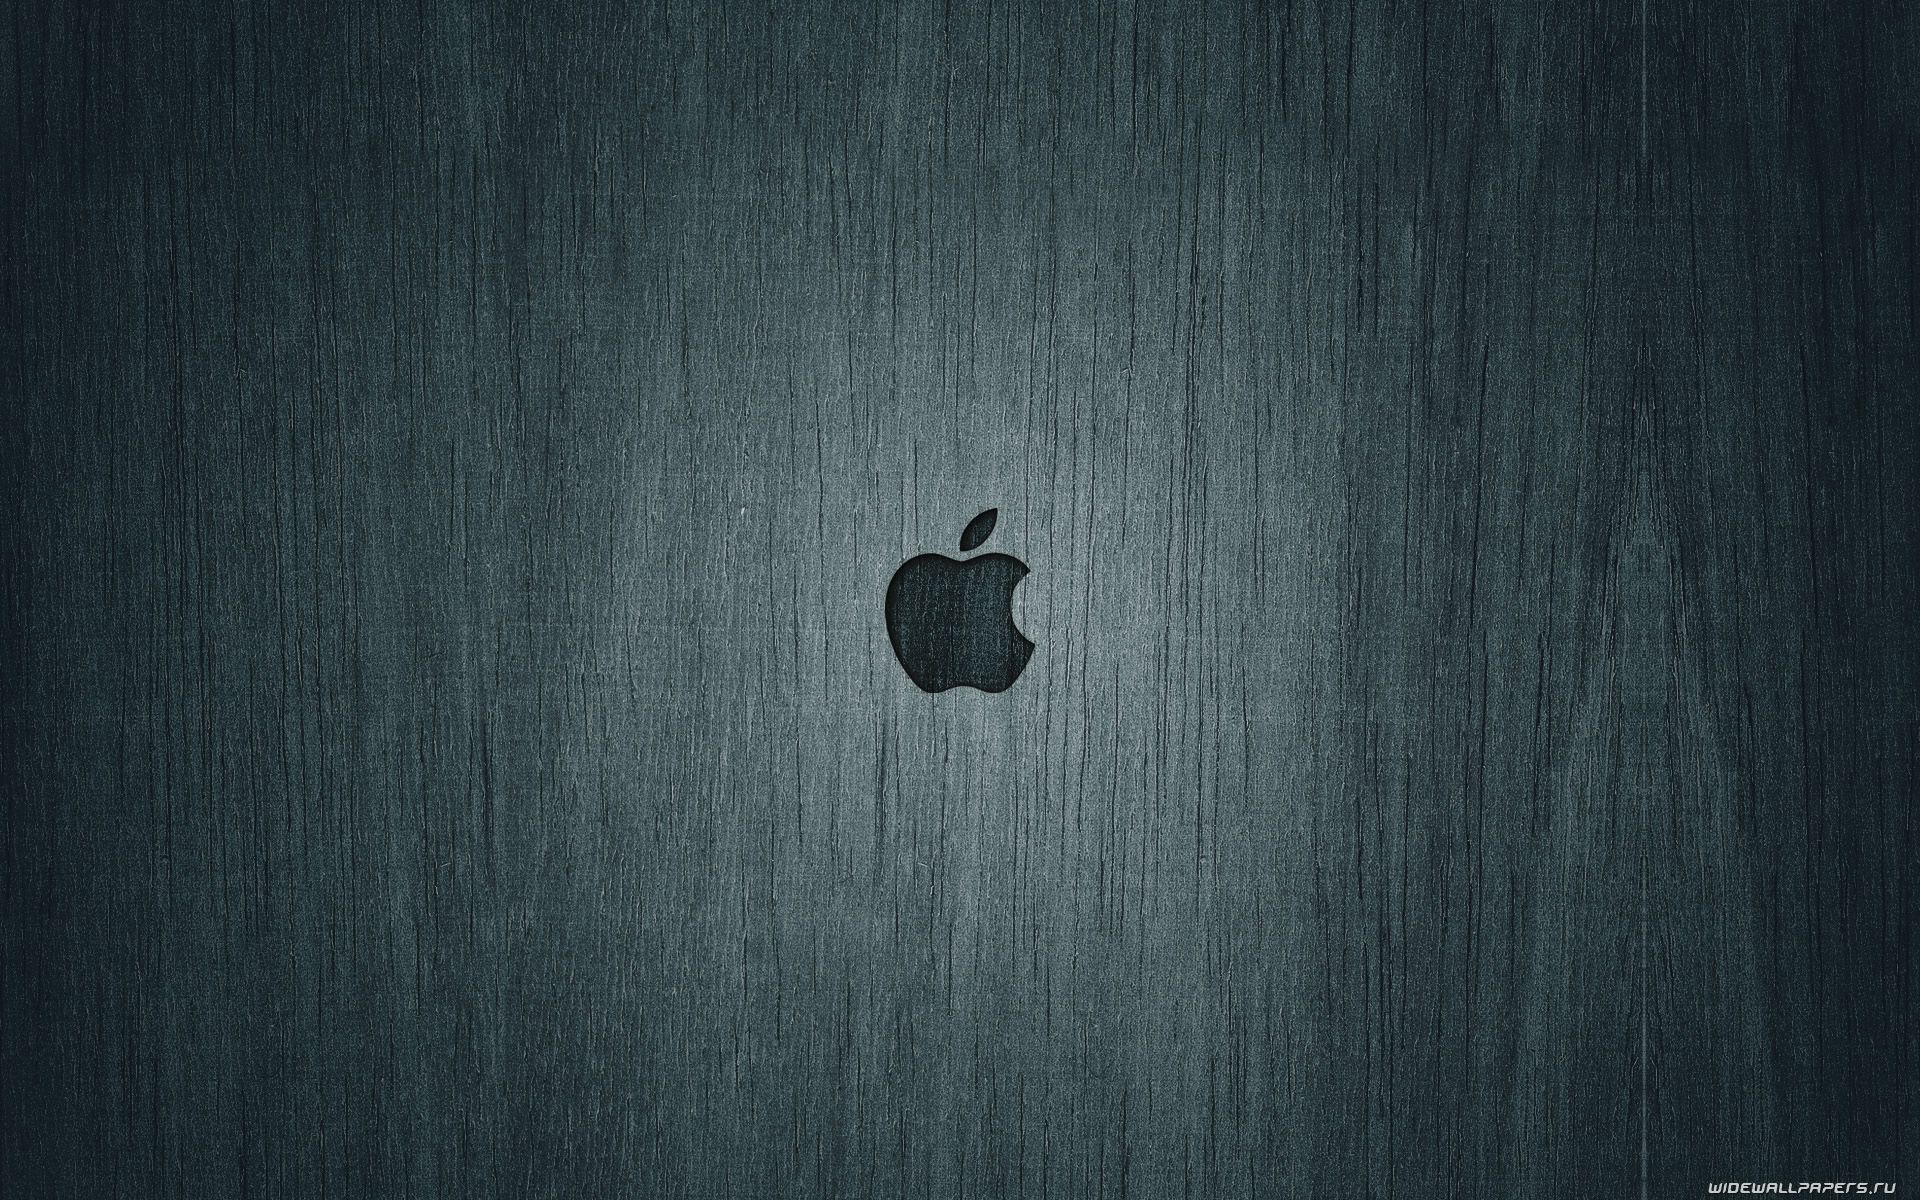 Apple Laptop Wallpapers Top Free Apple Laptop Backgrounds Wallpaperaccess